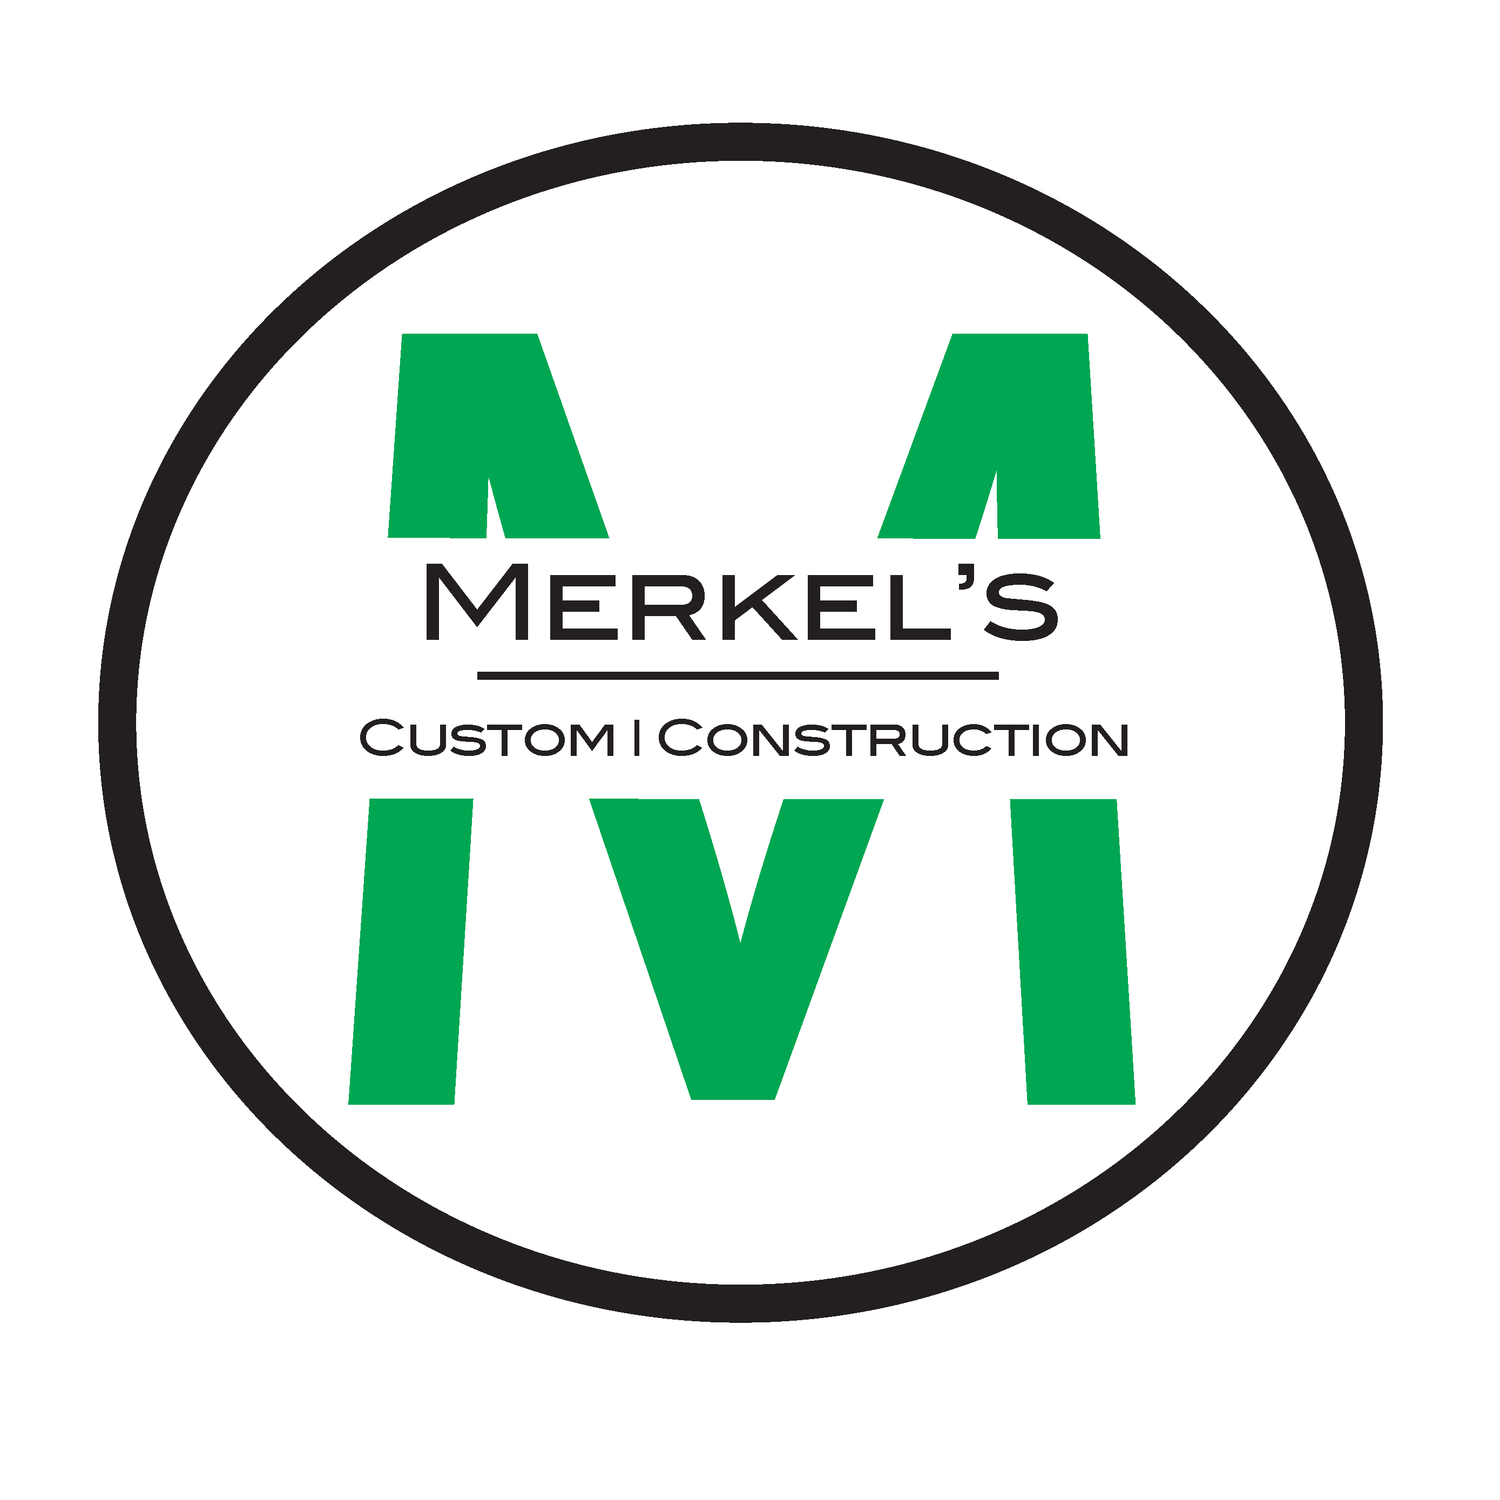 Merkel's Custom Construction